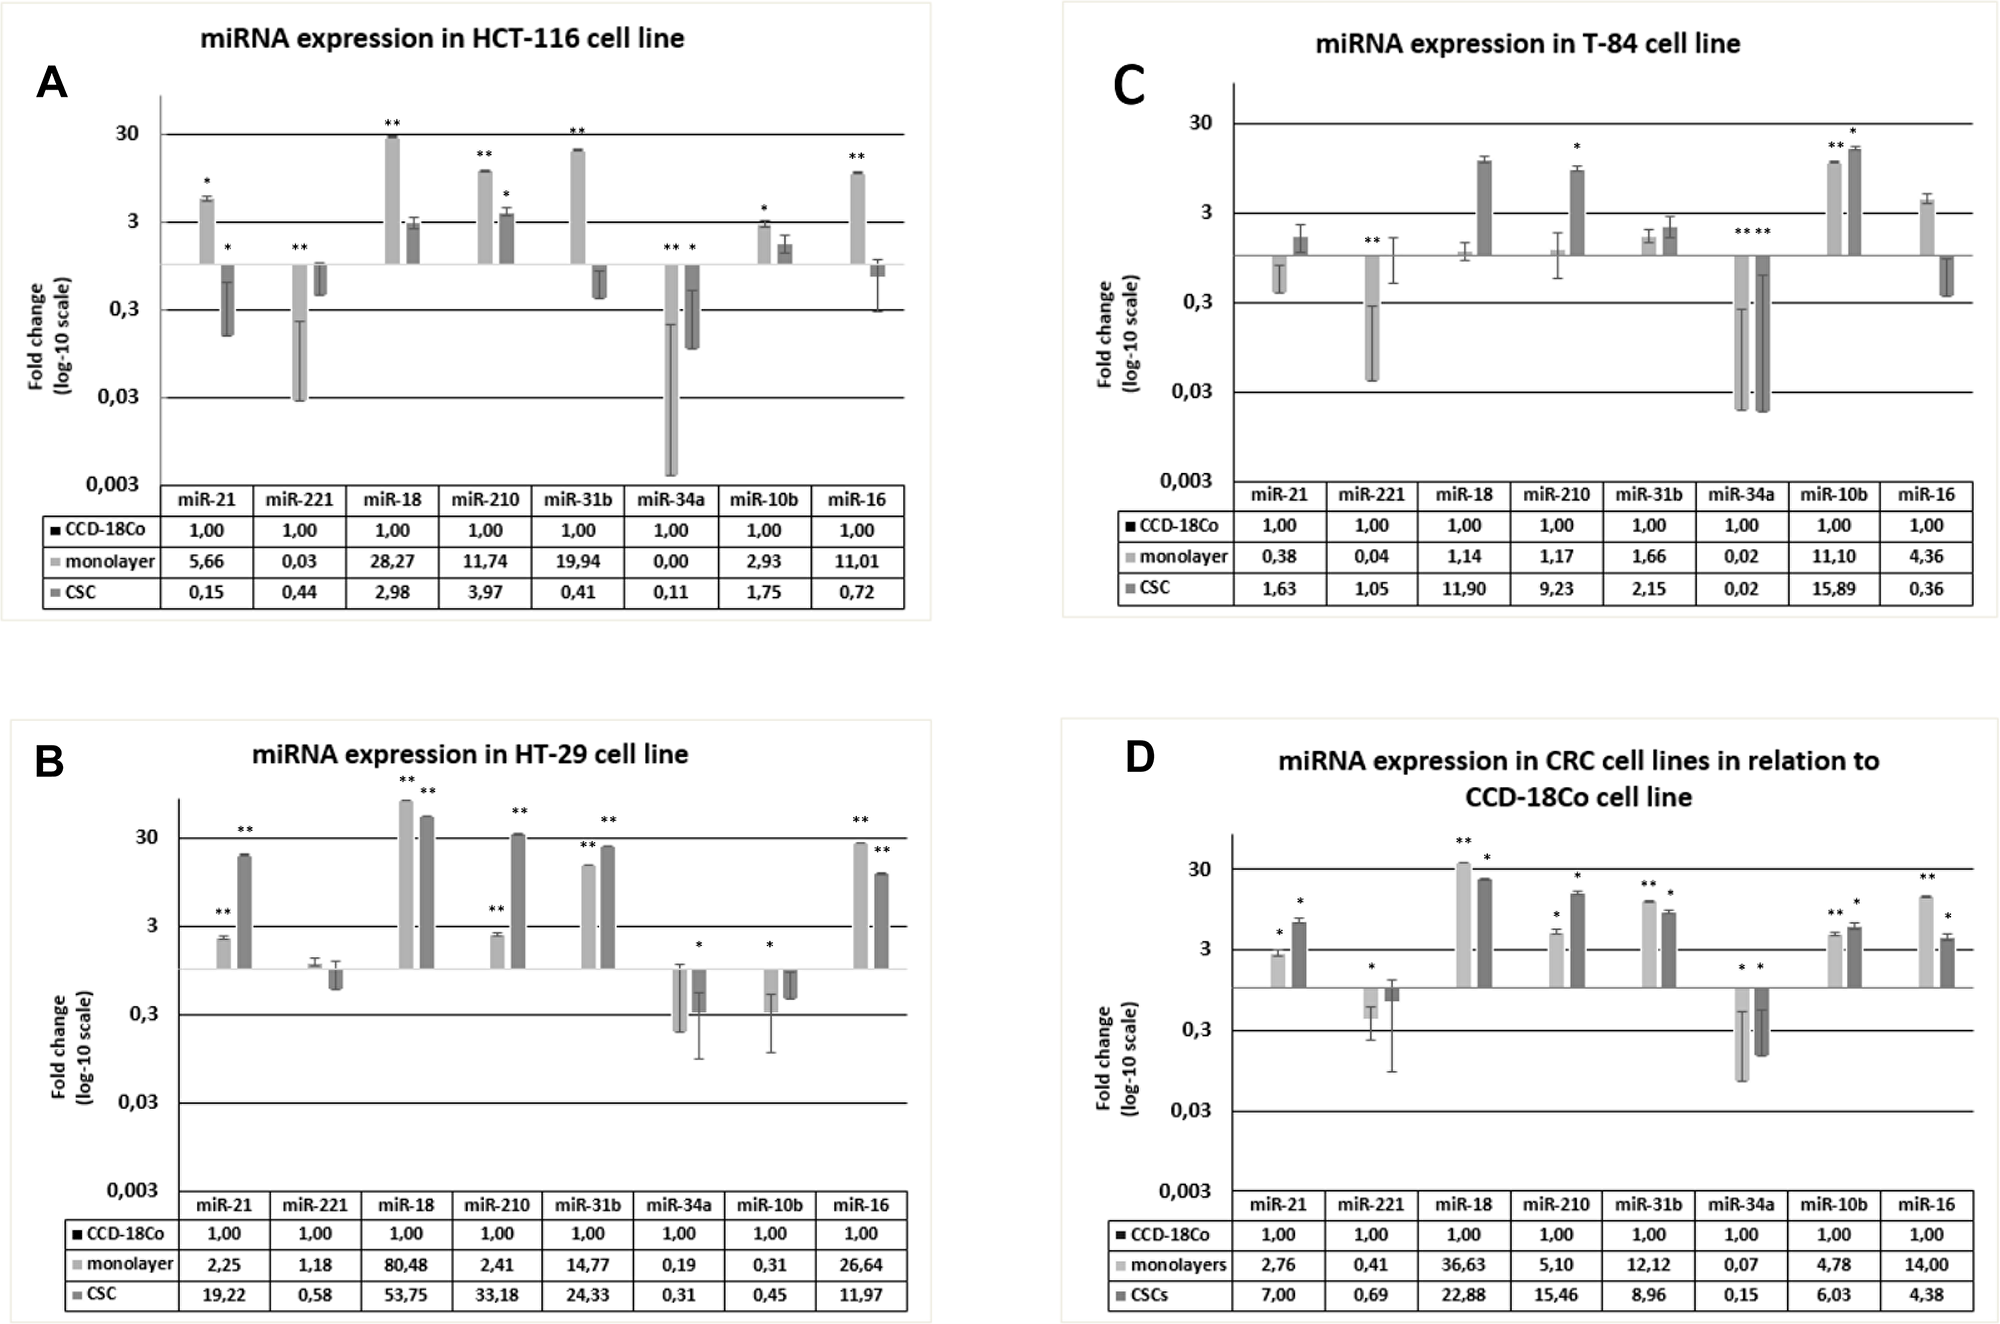 Expression of miRNAs in HCT-116, HT-29 and T-84 CSCs and monolayers, in relation to the expression in CCD-18Co cells.